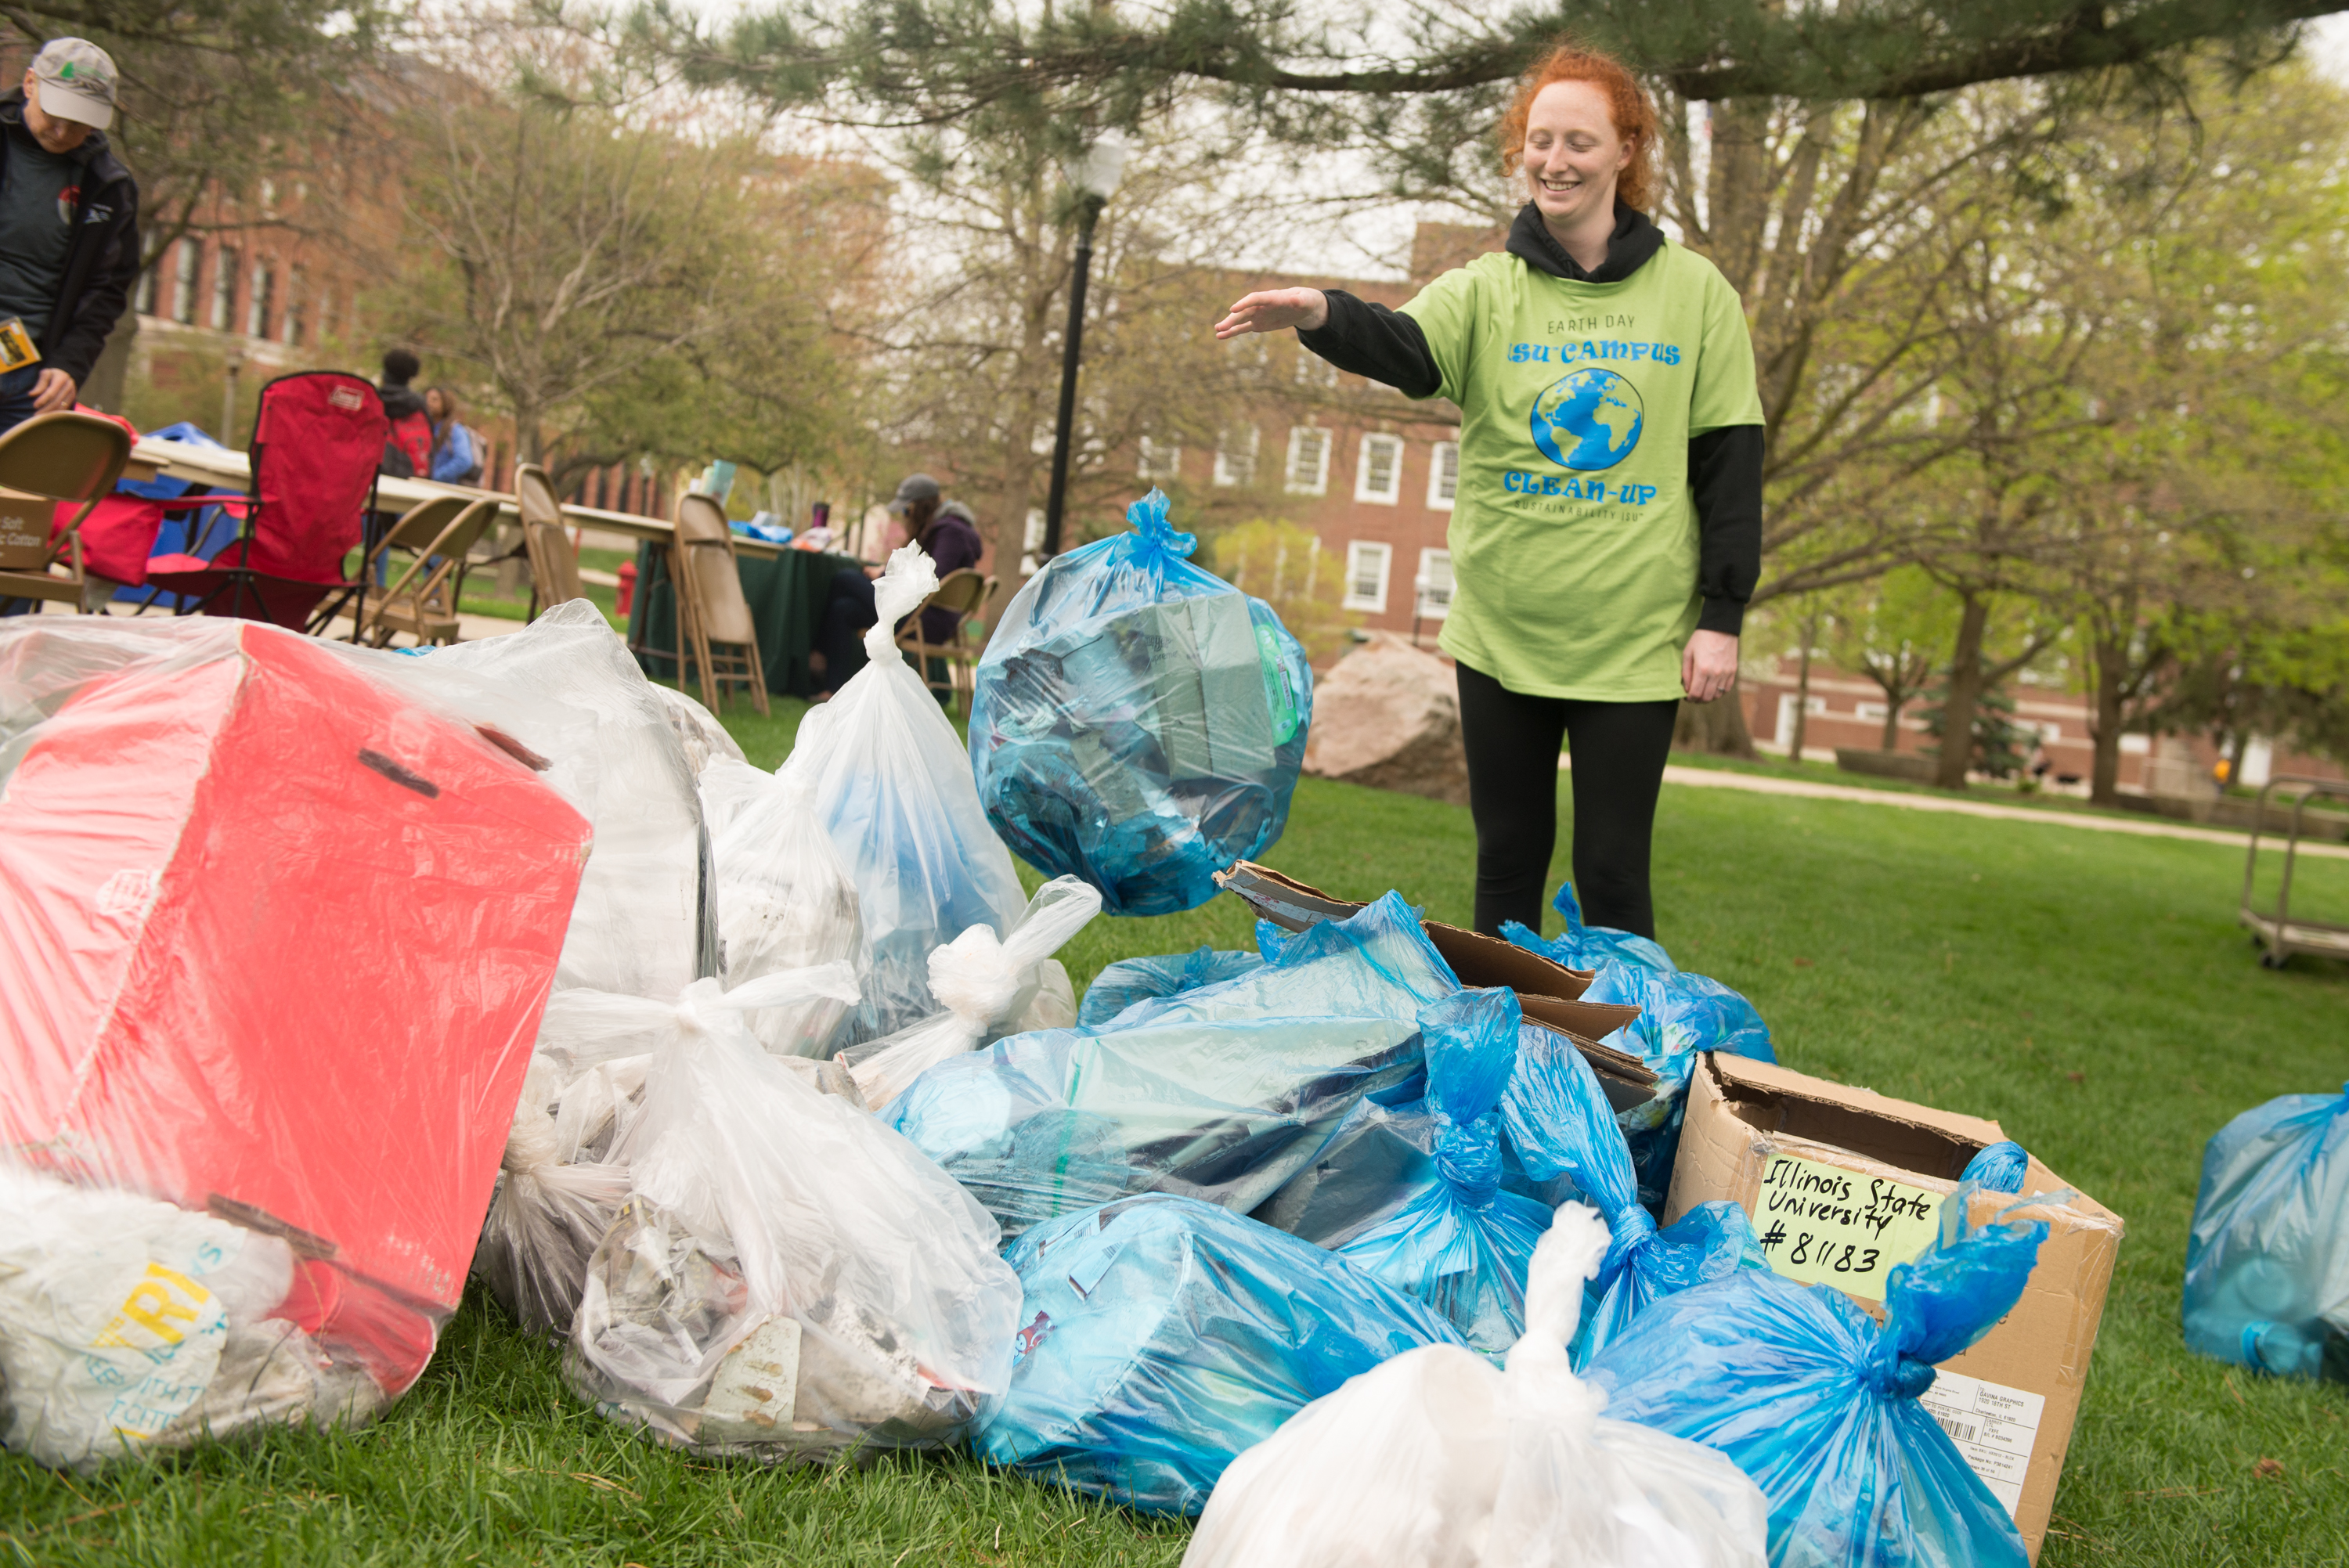 Volunteers removed about 300 pounds of waste from campus and the surrounding areas.